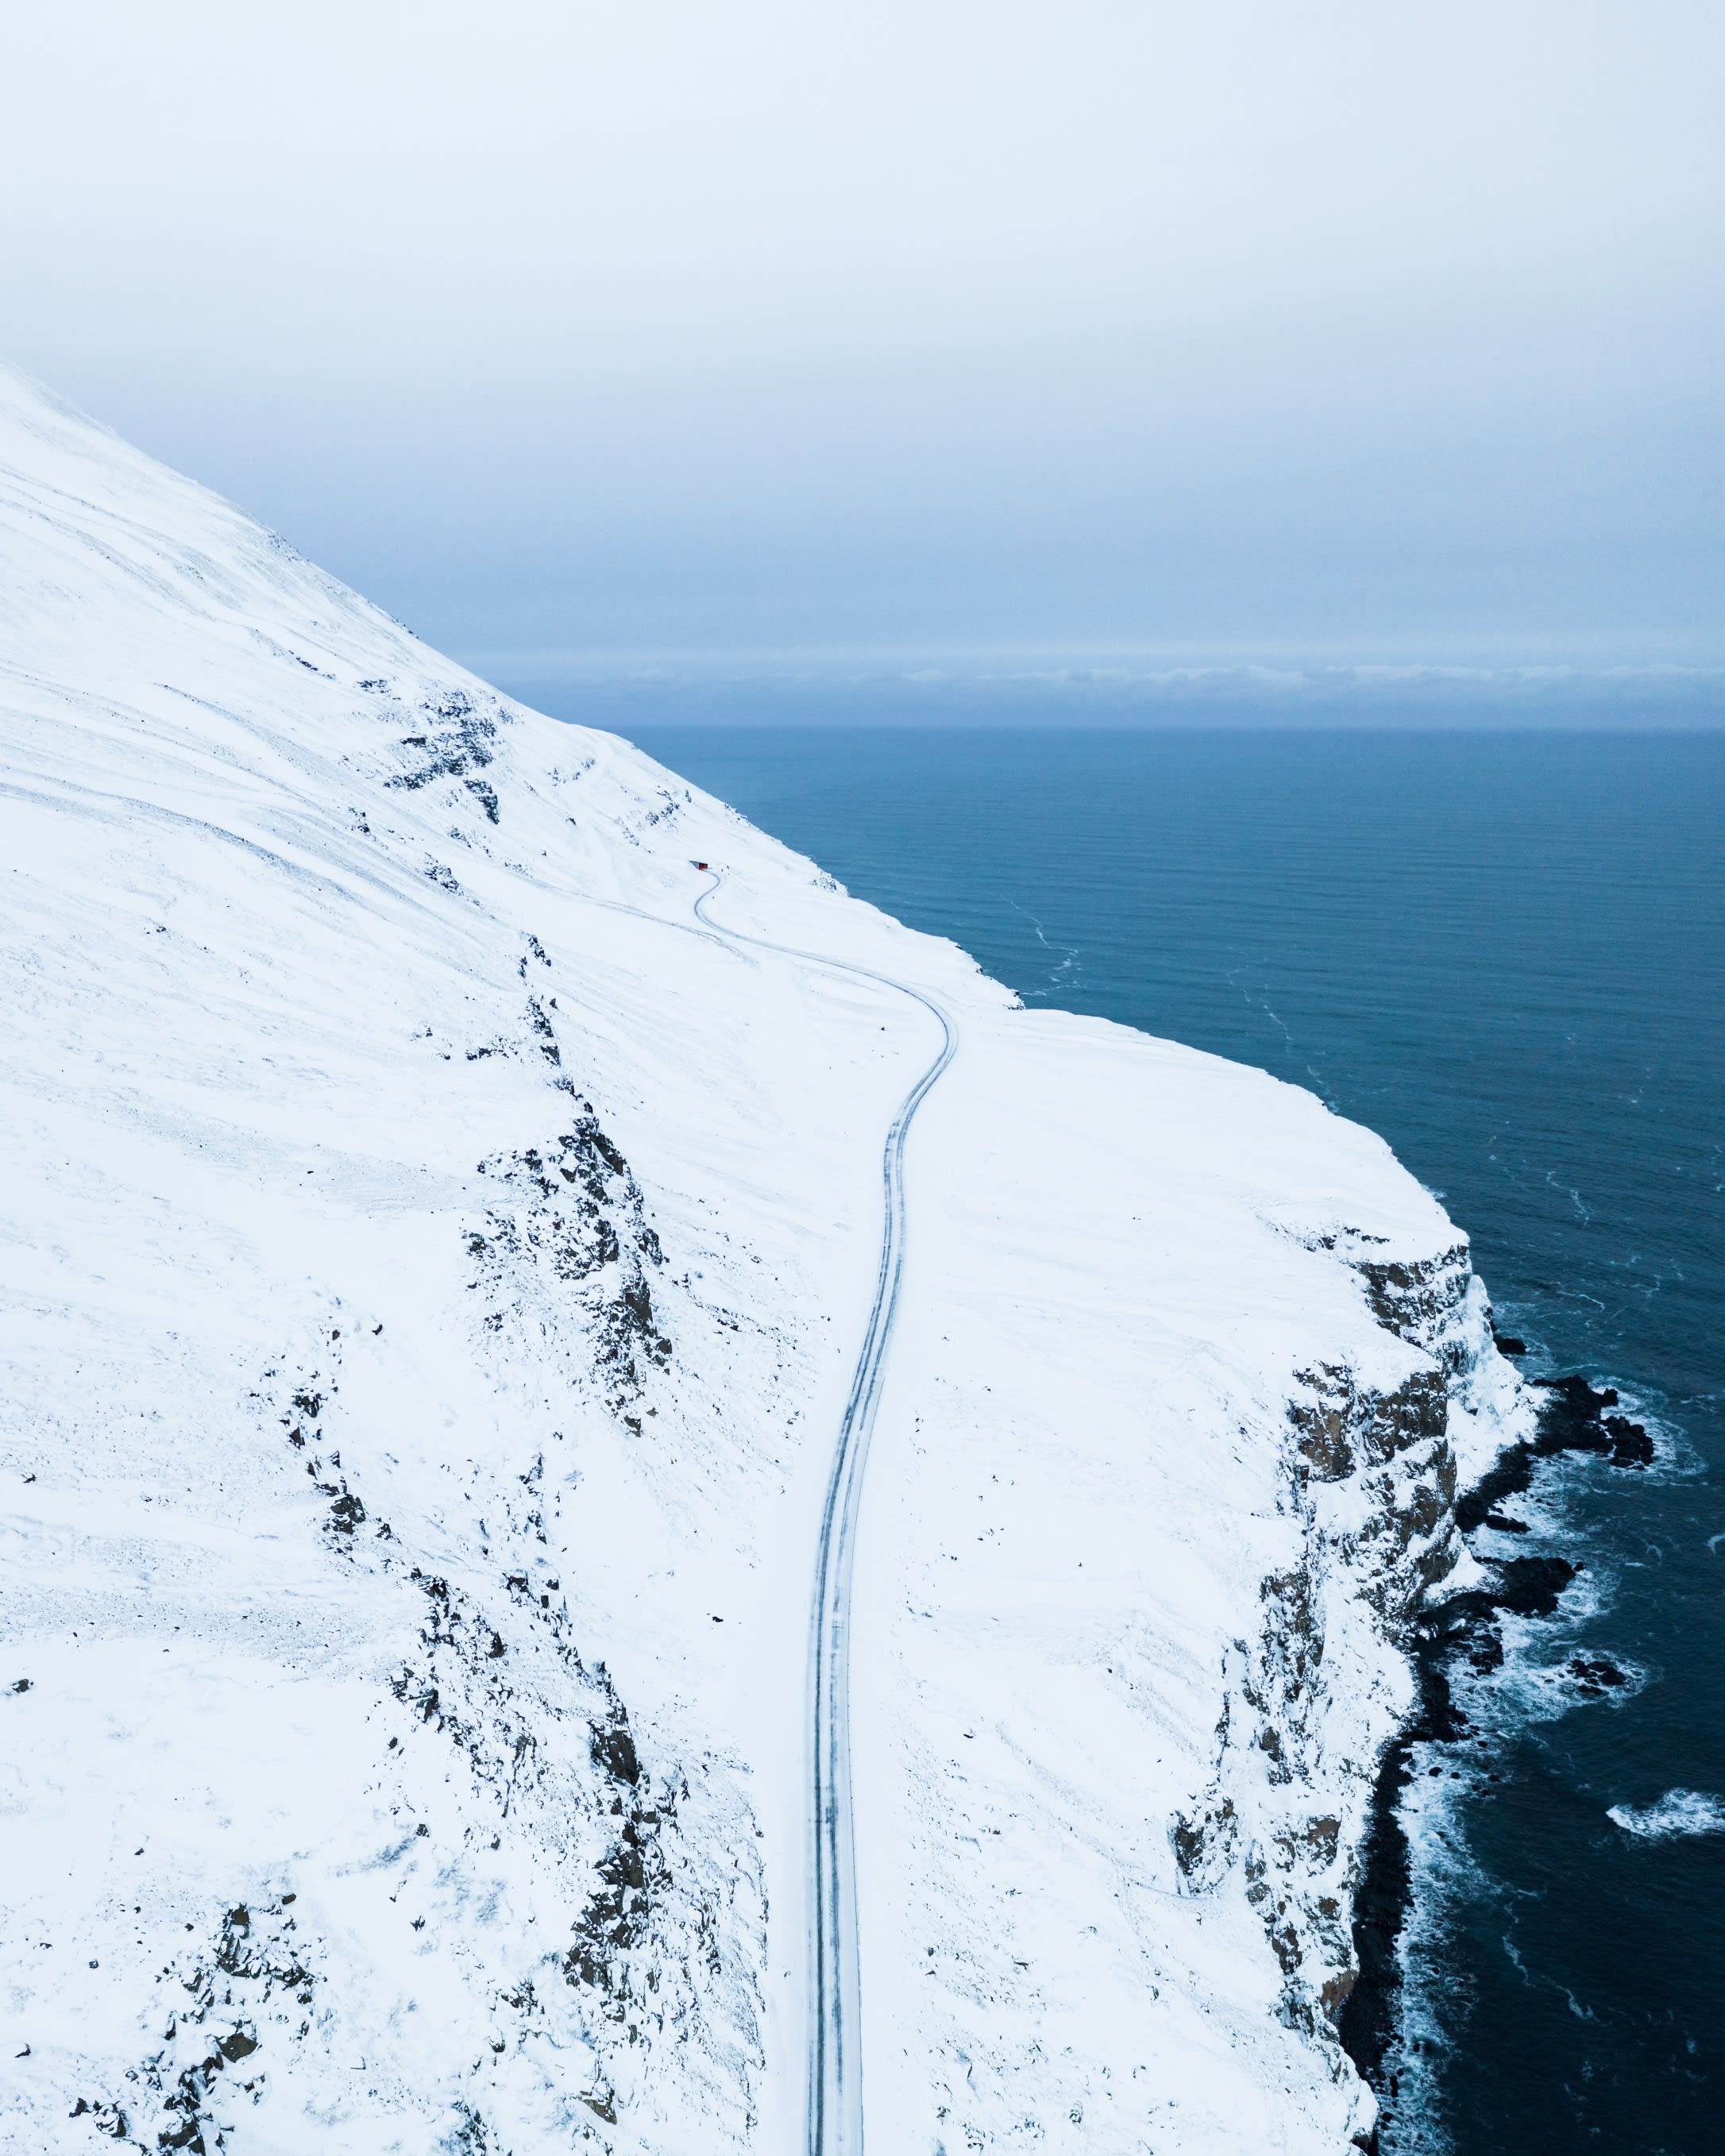 an aerial view of a fjord in Iceland with a road hugging the side of the mountain